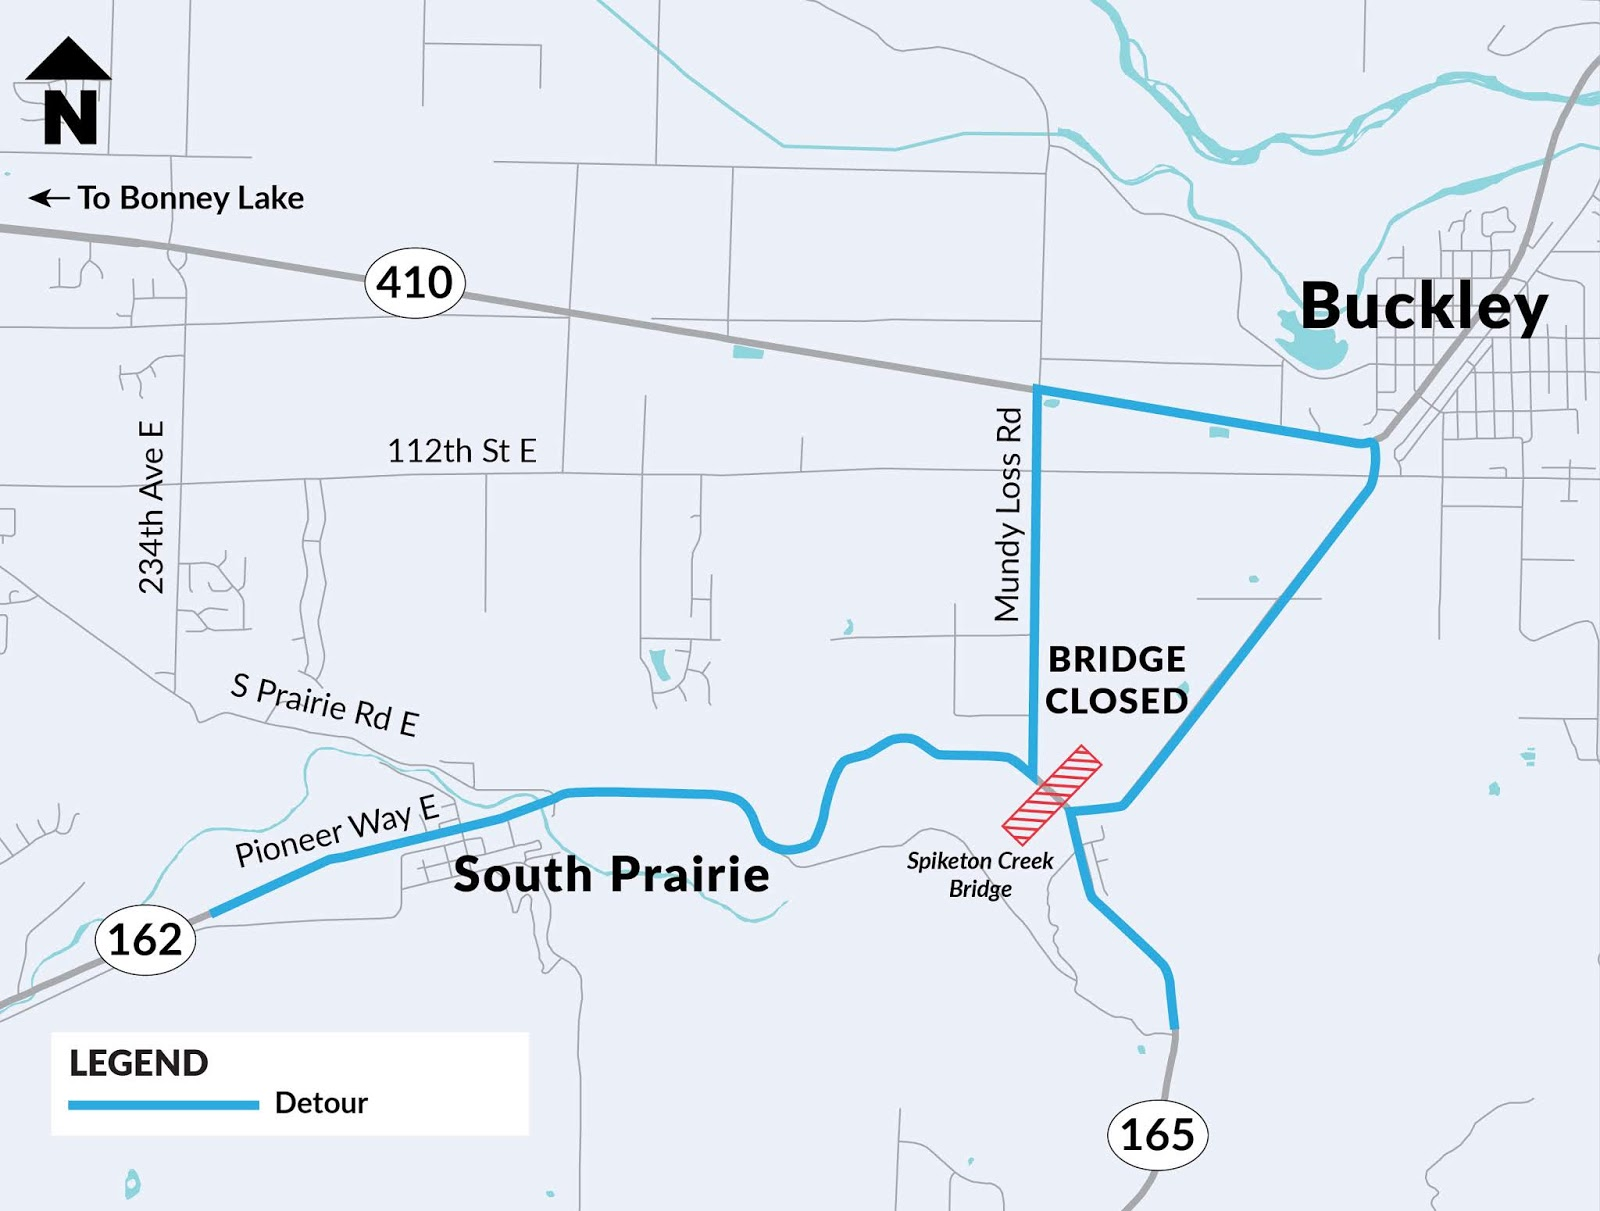 during the bridge closure a signed detour will be in place along pioneer way east to mundy loss road to sr 410 and back to sr 165